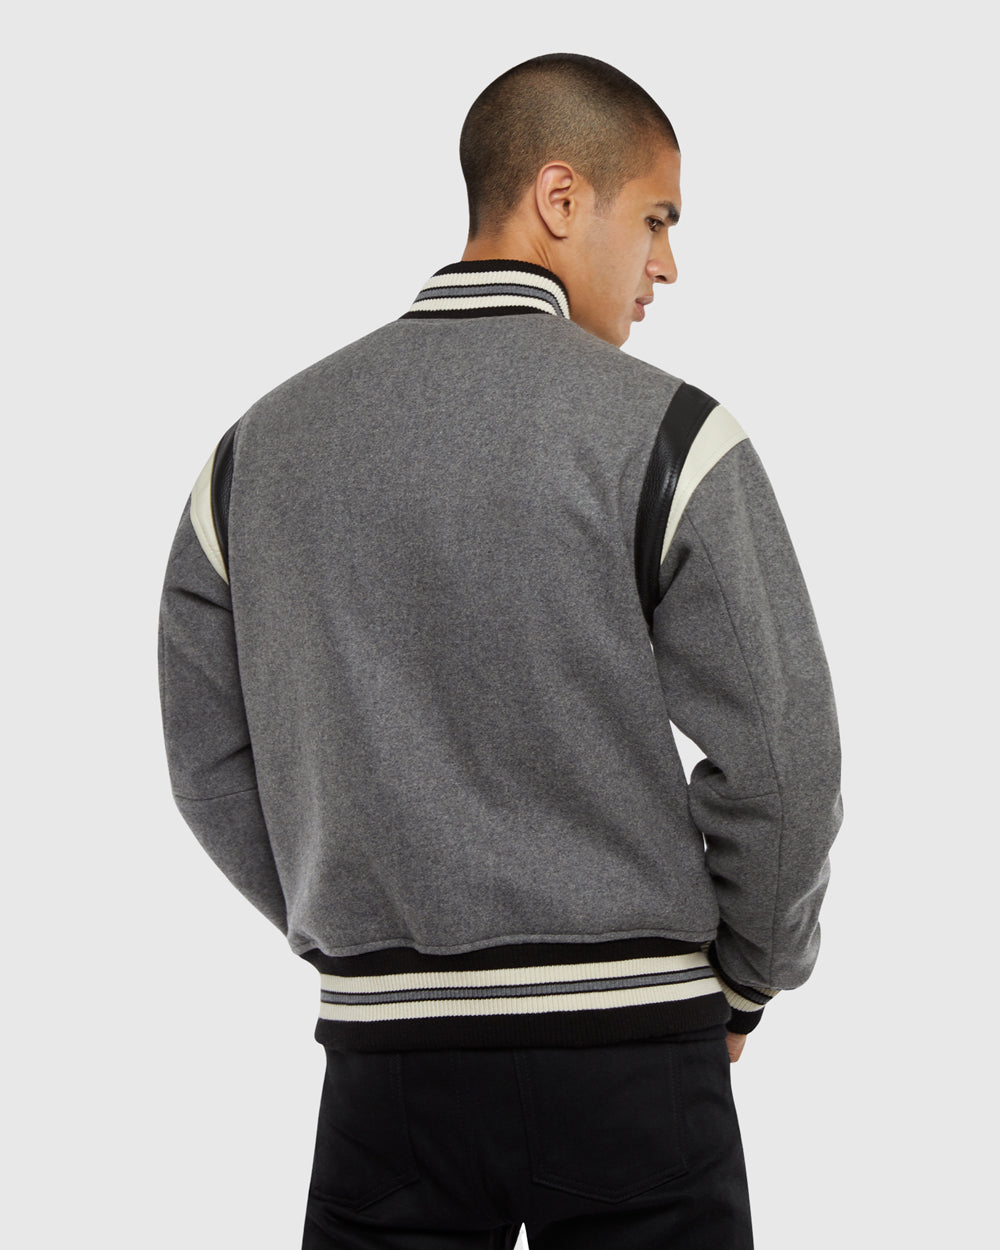 OVO SOPHOMORE JACKET - GREY